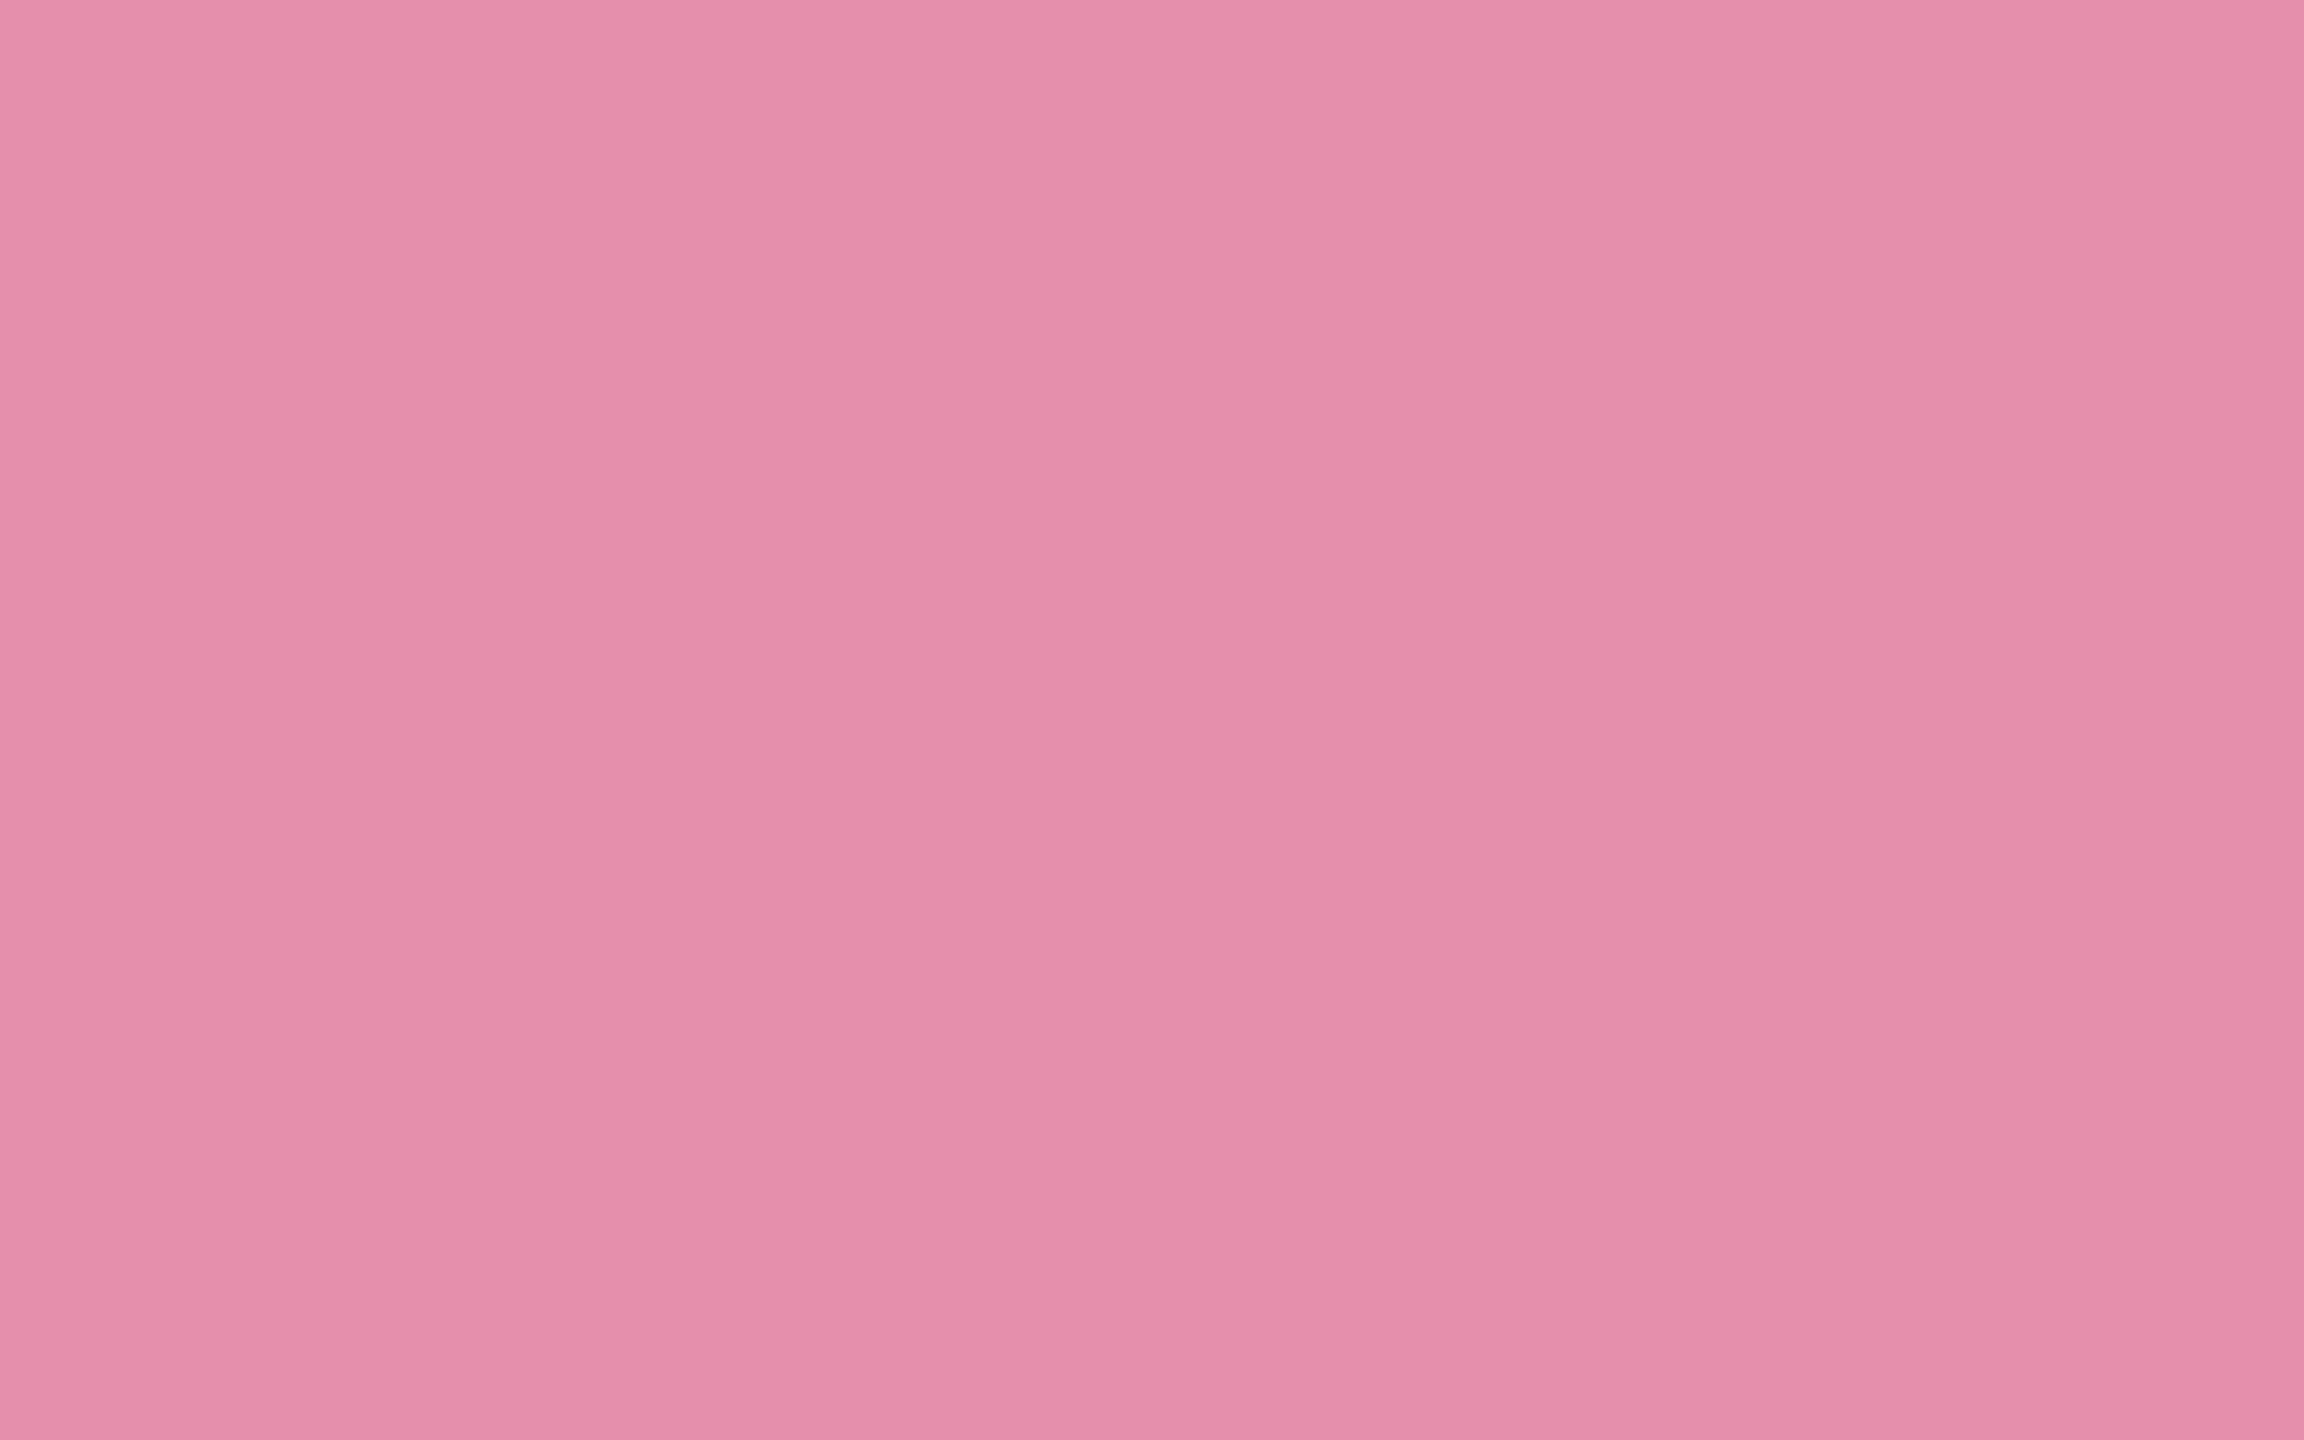 2304x1440 Light Thulian Pink Solid Color Background